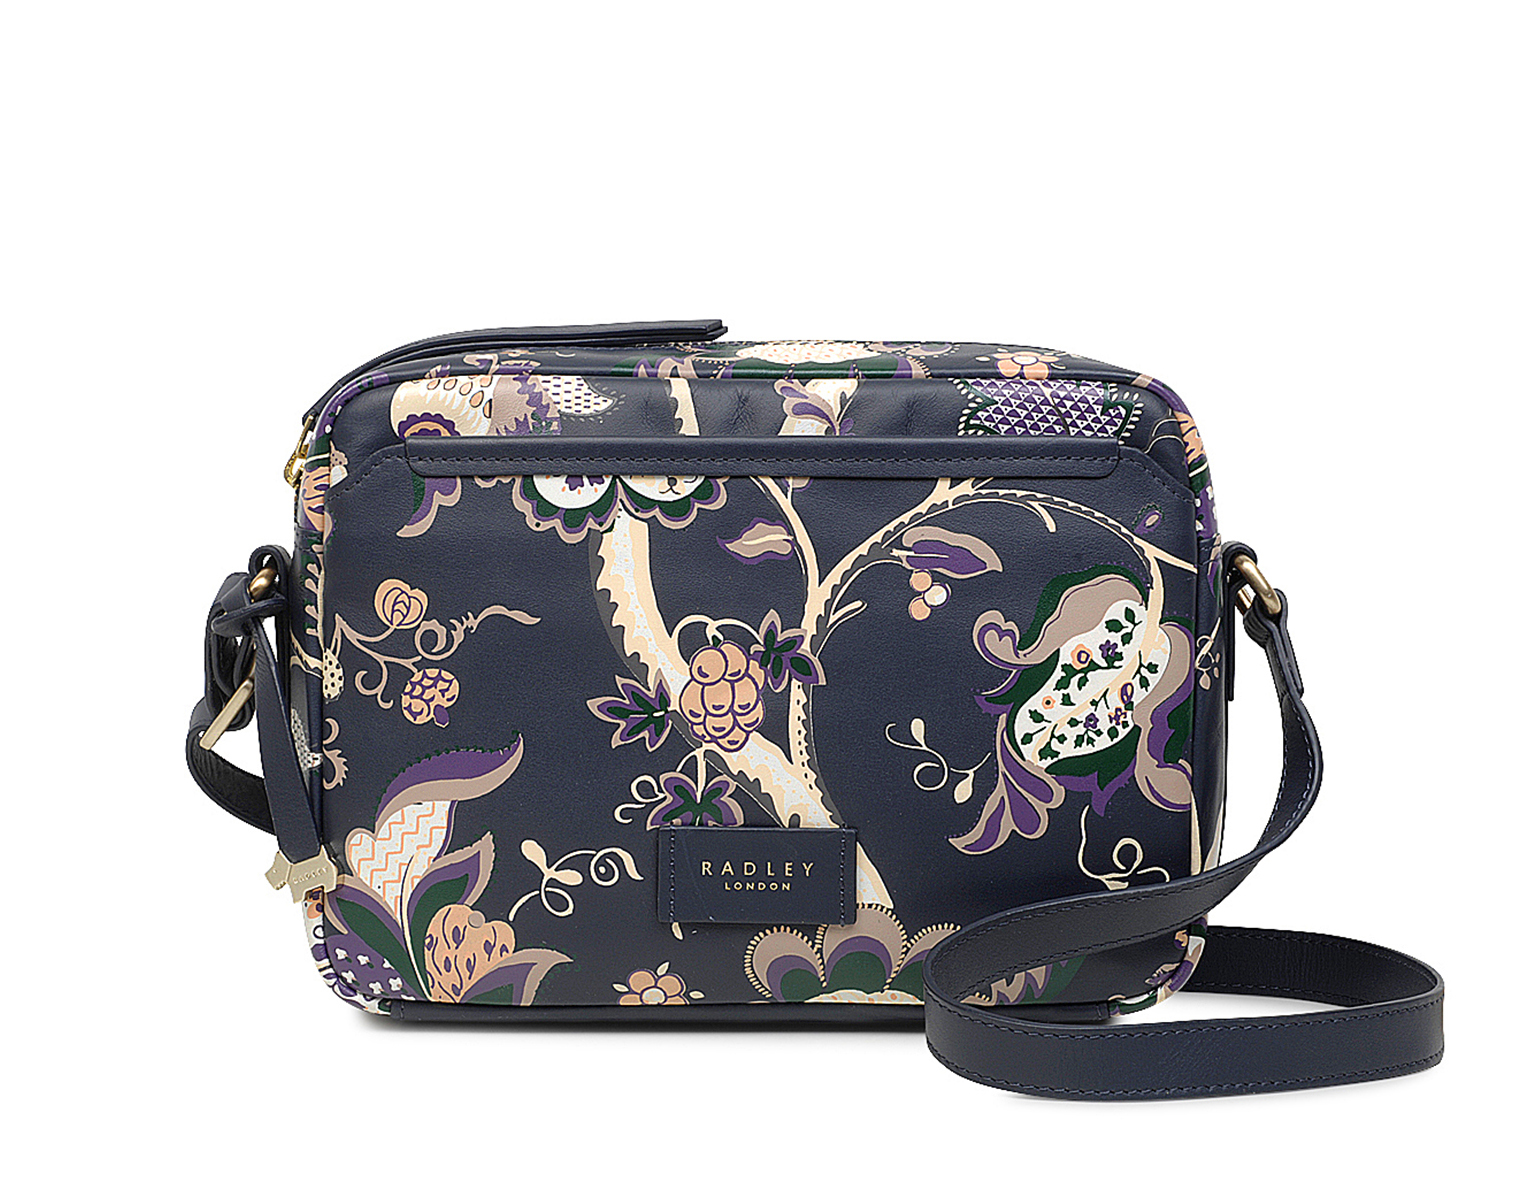 Also On Offer In The New Radley X Sanderson Collection Are Their Por And Now Iconic Cross Body Pocket Bags Which S Every 7 Minutes A Range Of